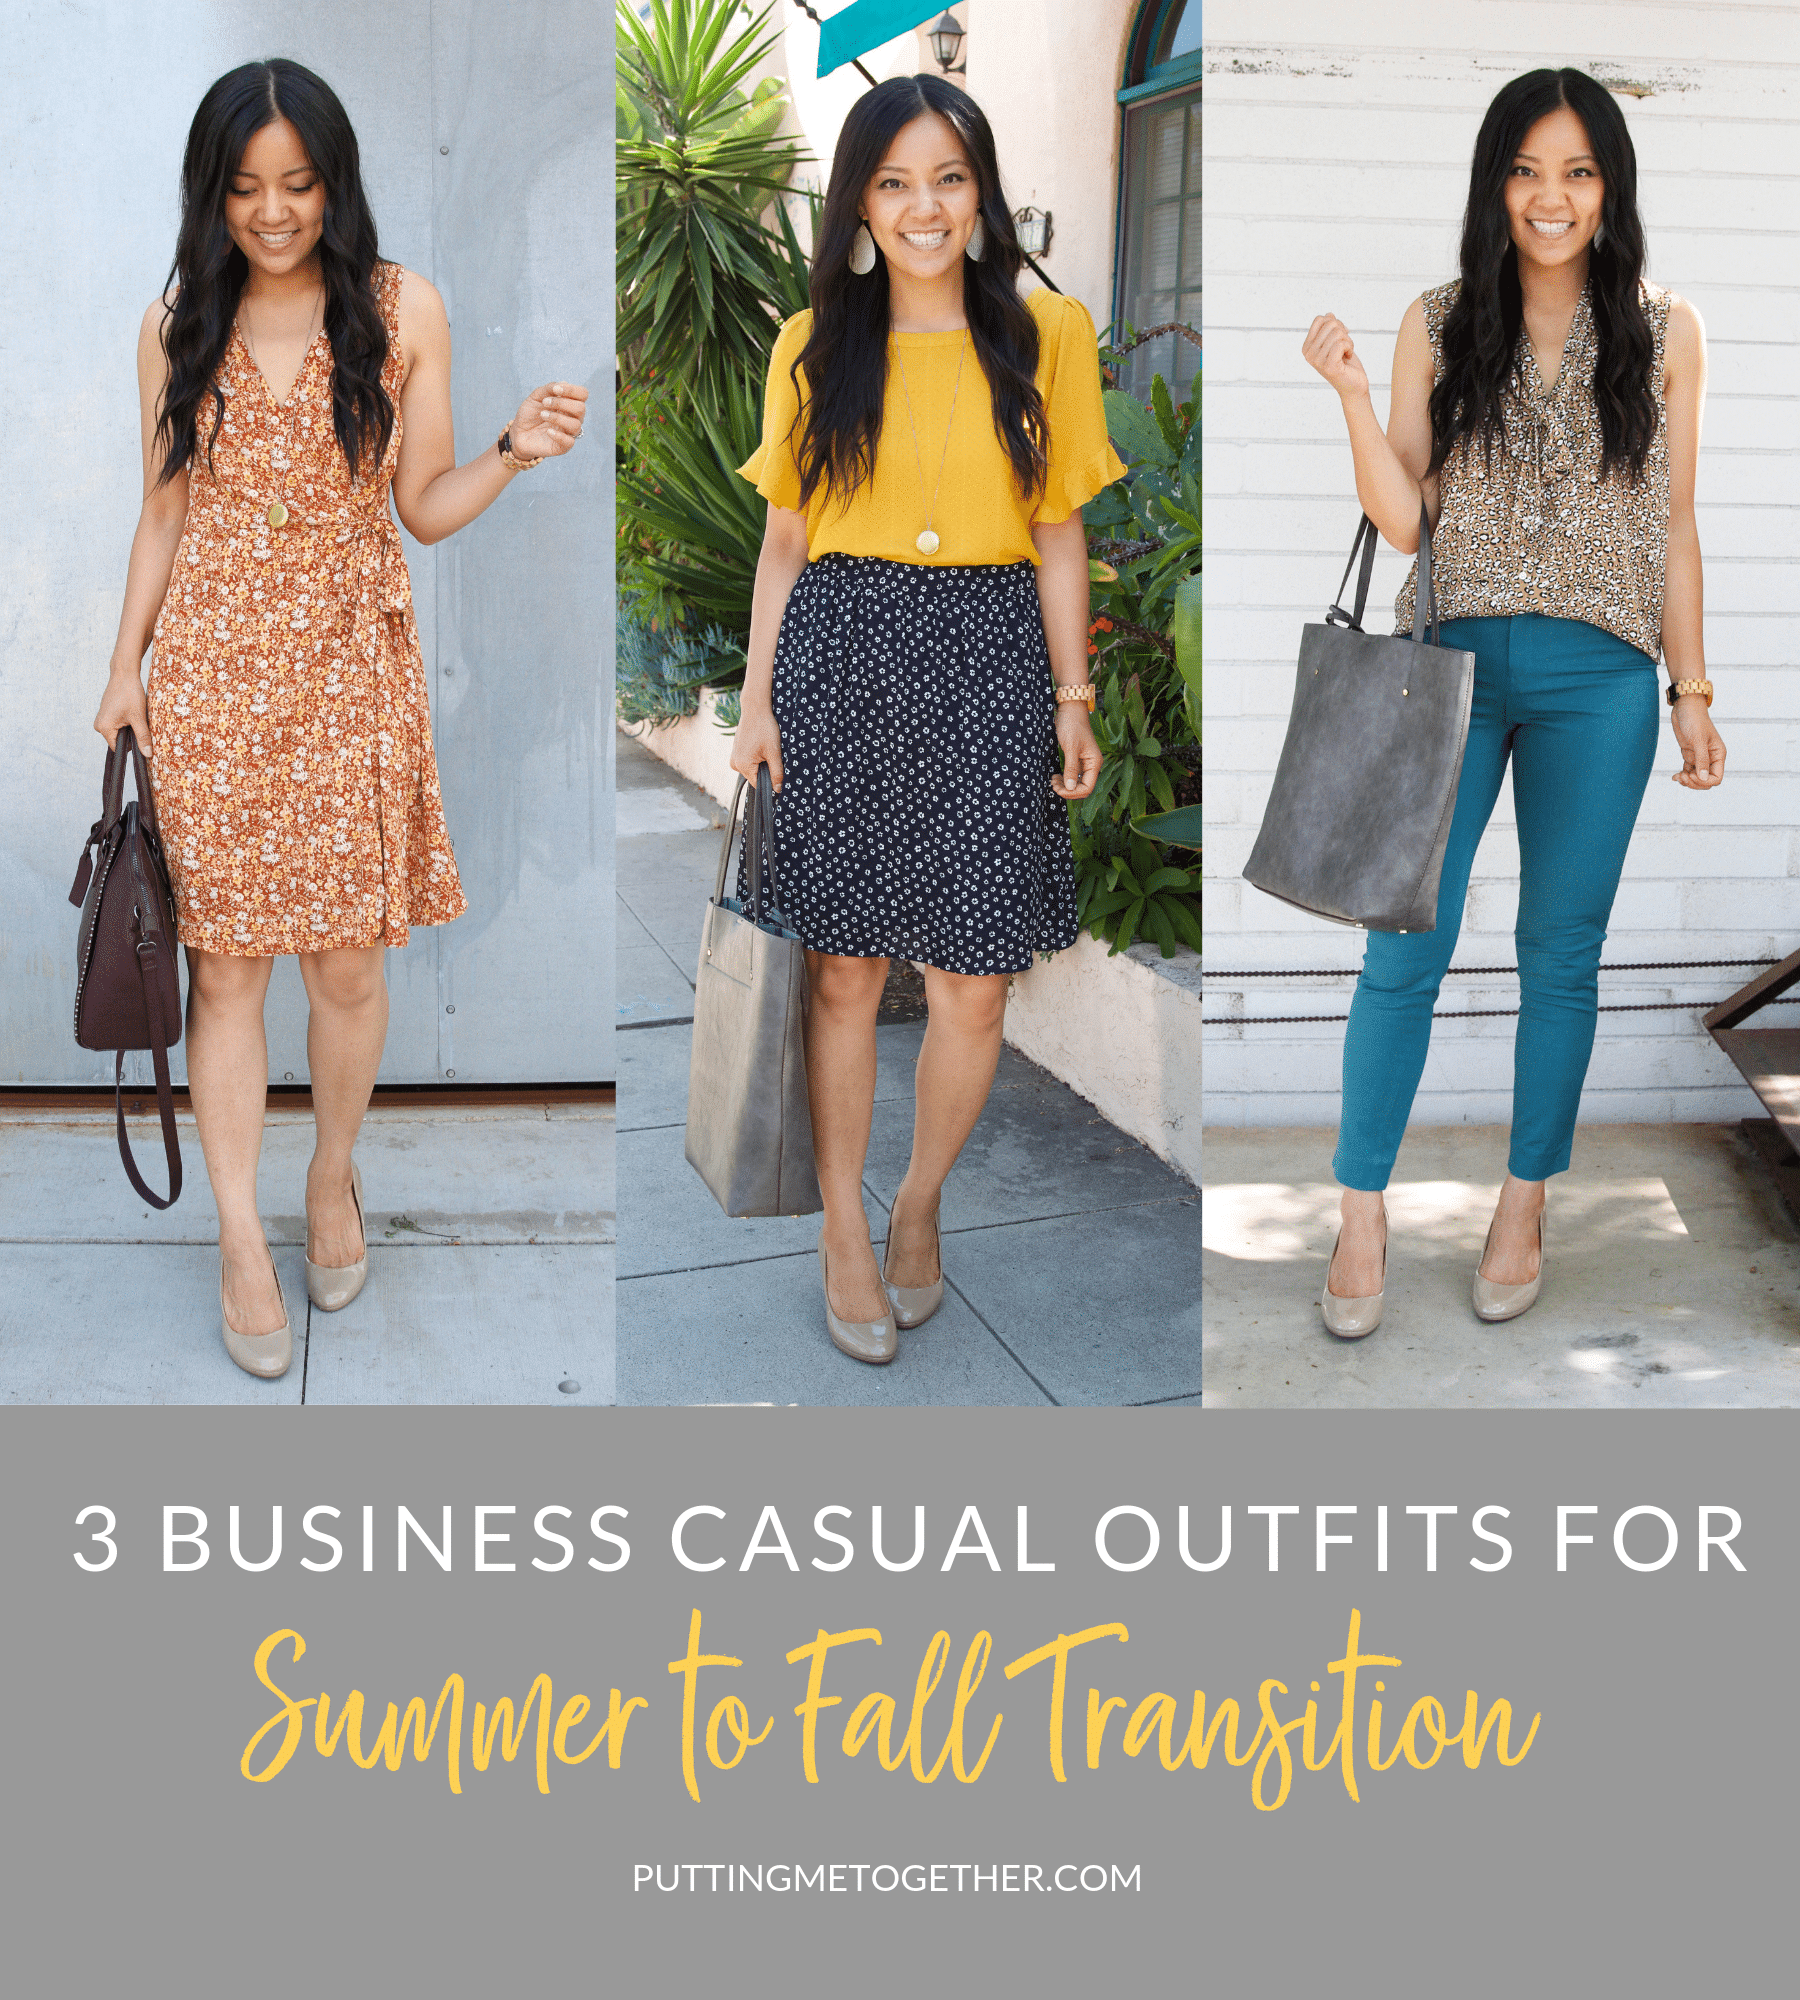 3 BUSINESS CASUAL OUTFITS FOR SUMMER TO FALL TRANSITION